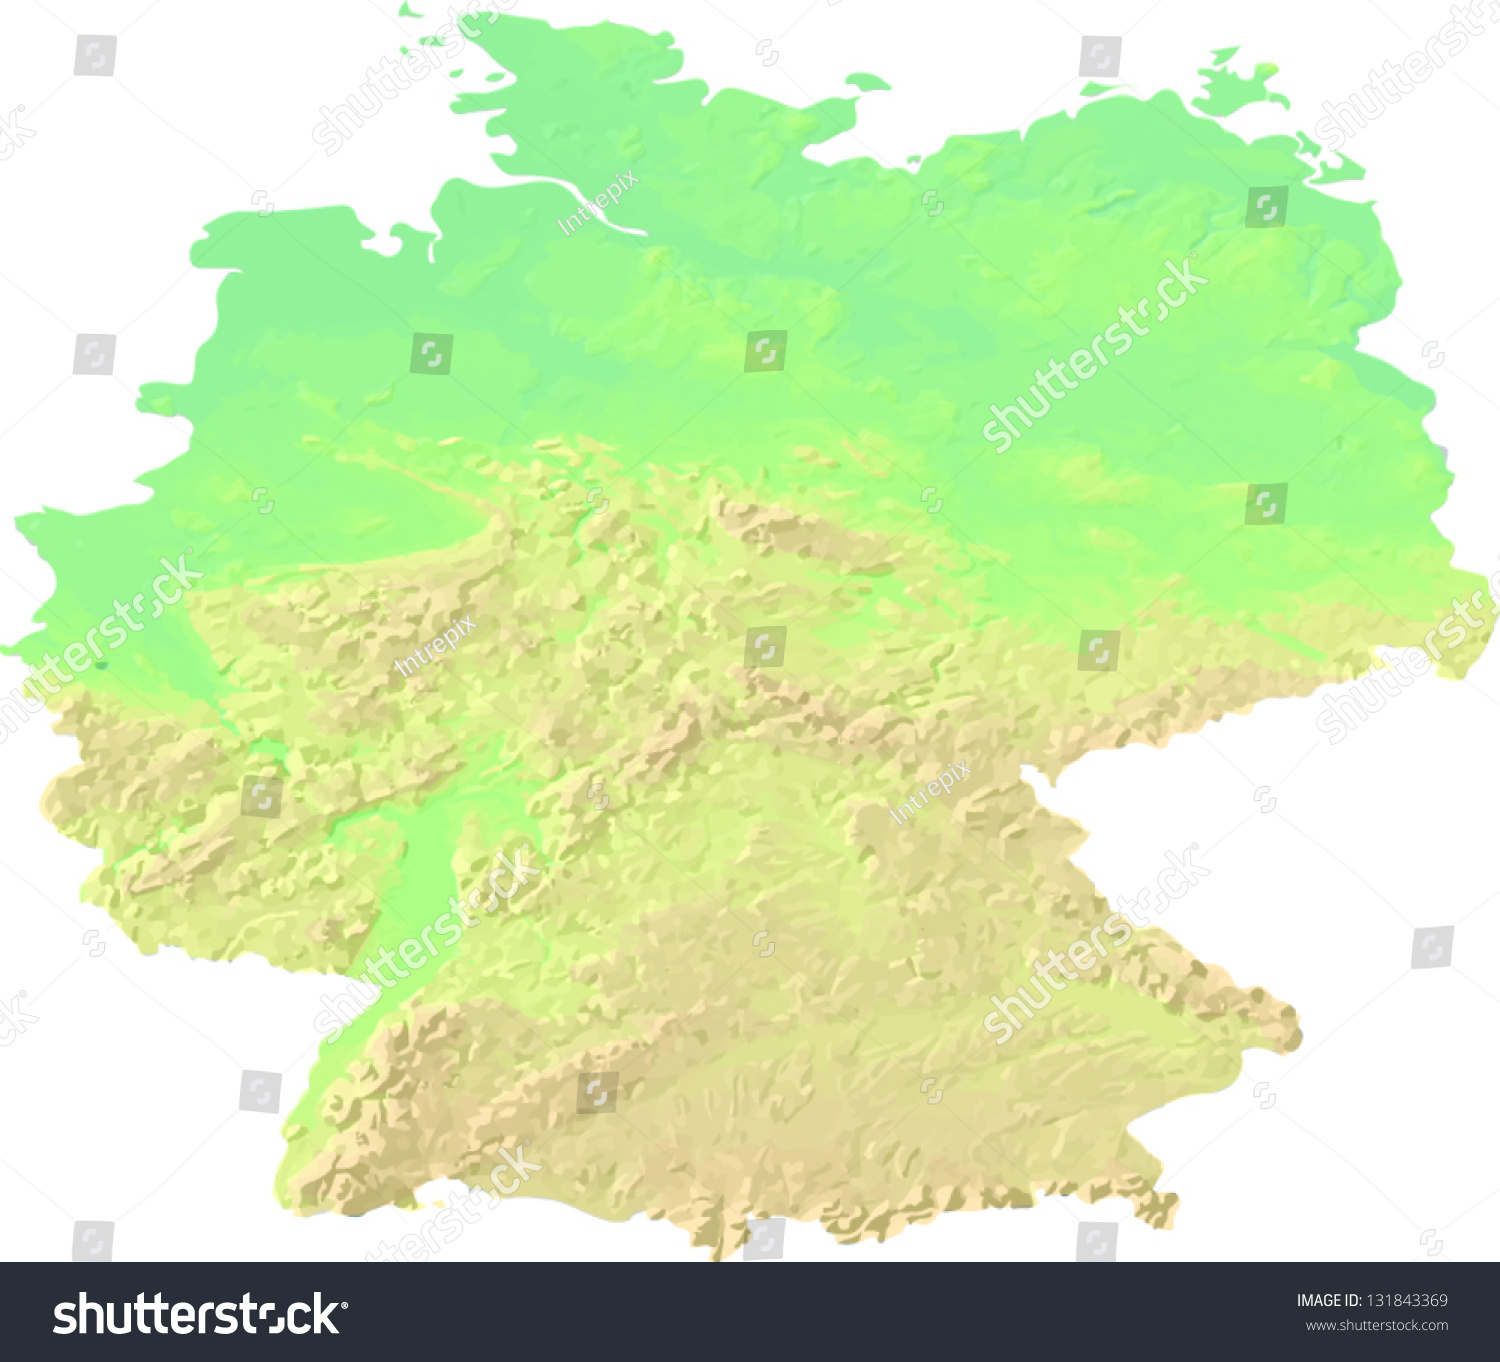 a map showing the land topography of germany with shaded relief and hypsometric tints on different